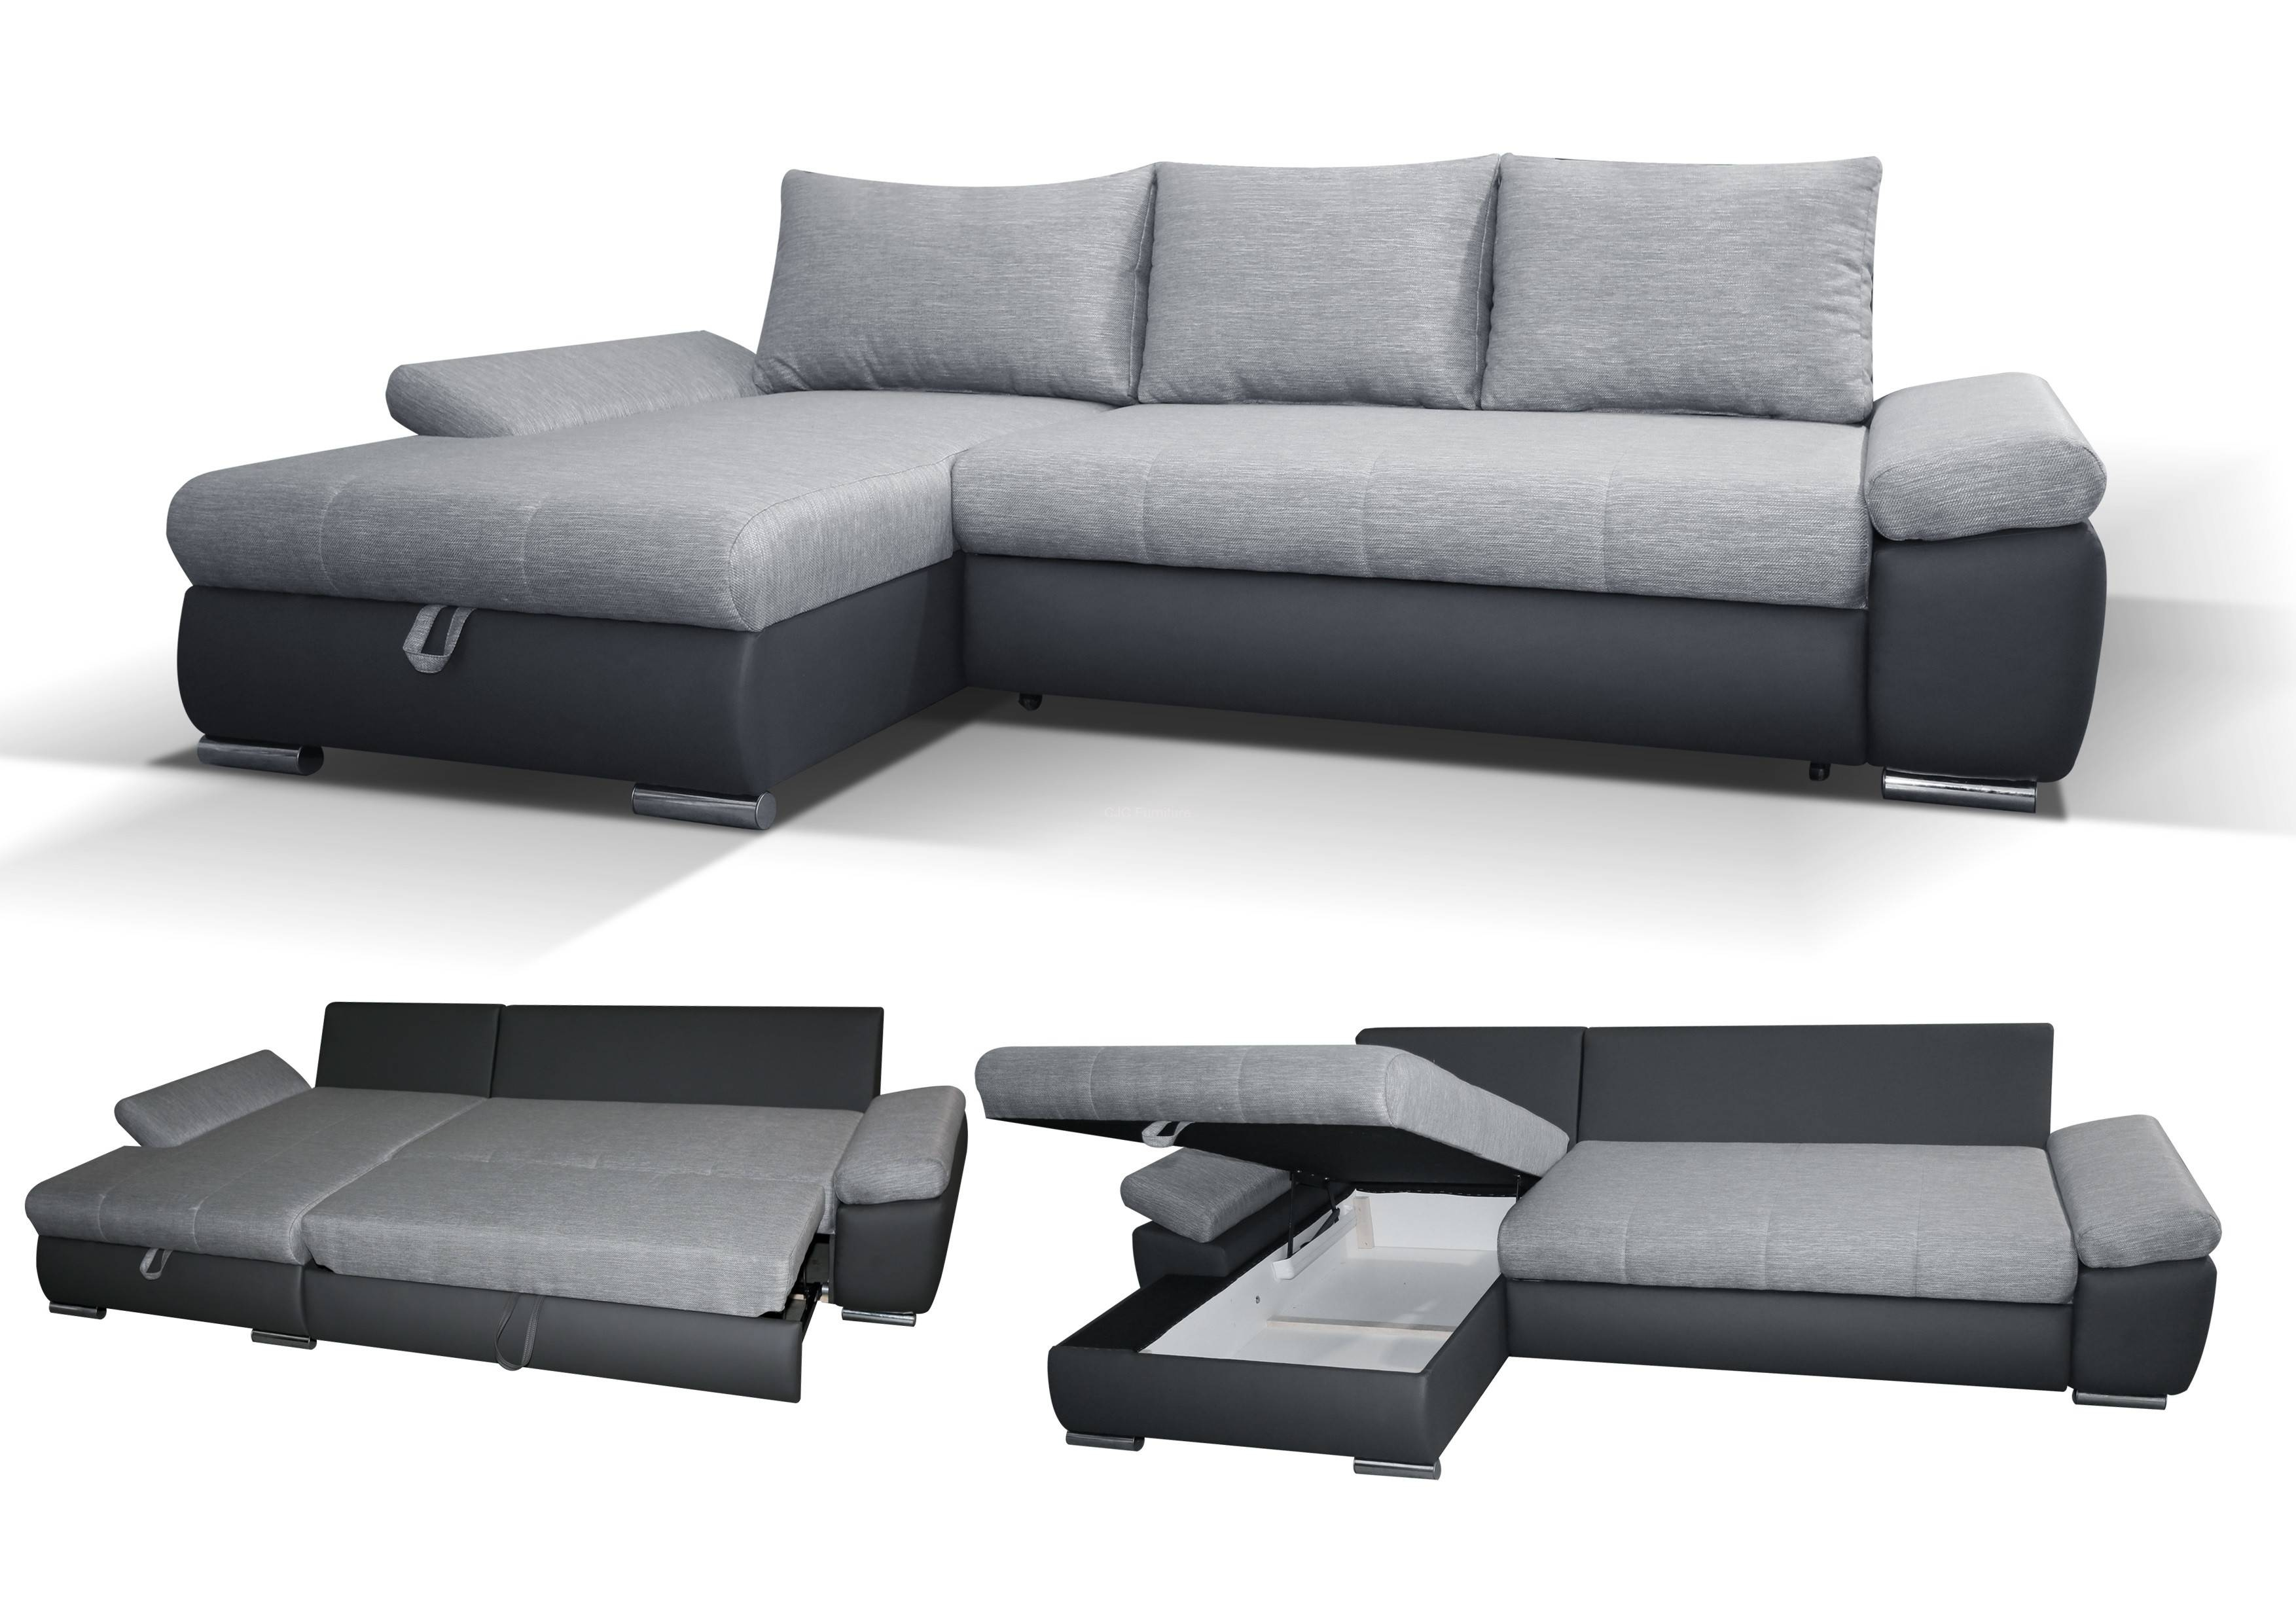 Astonishing Cheap Corner Sofa Bed Uk 82 In Innovative Sofa Beds within Cheap Corner Sofa (Image 4 of 30)